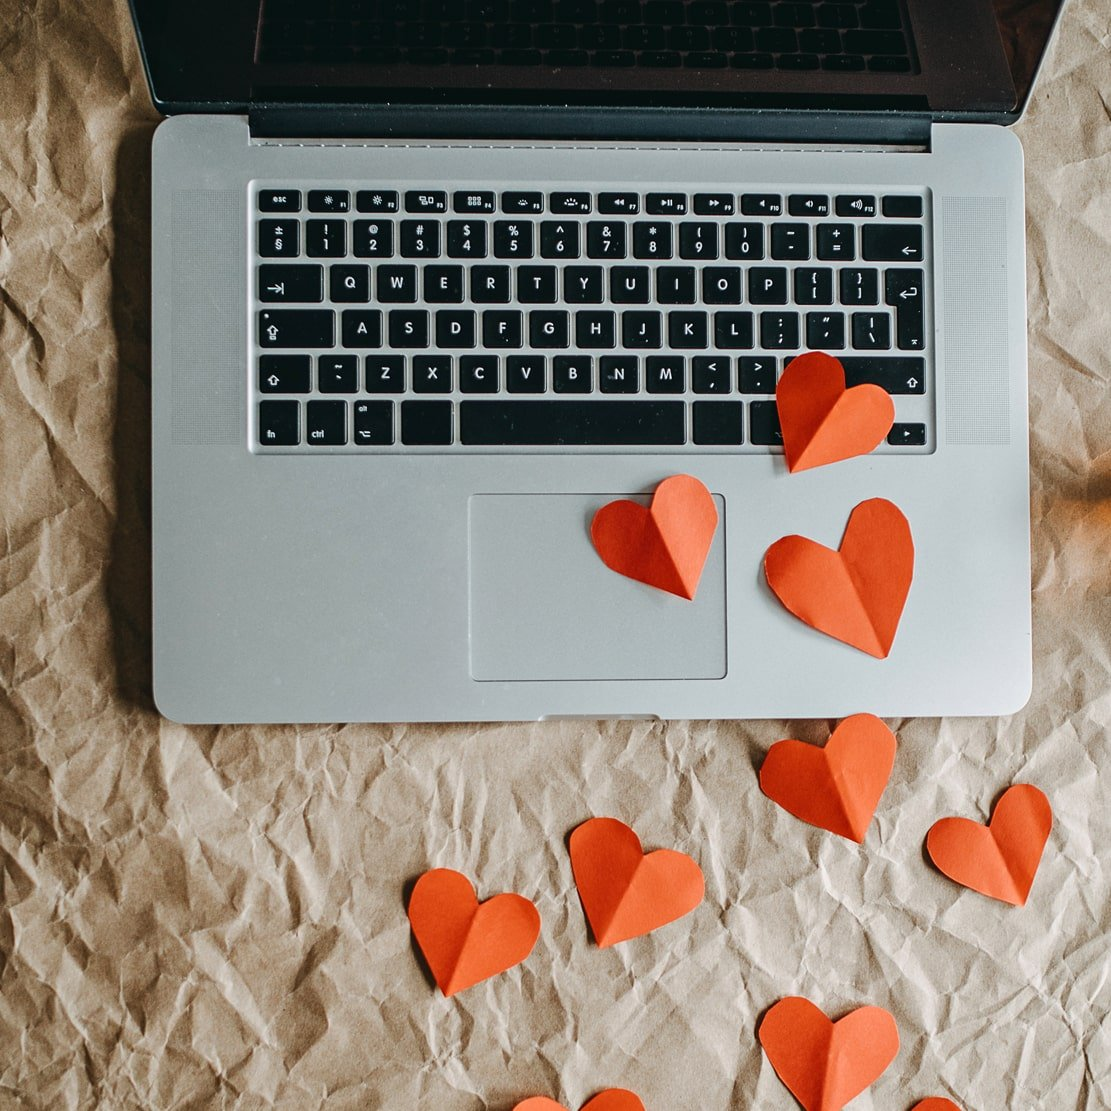 Paper hearts leading to a laptop_don't fall prey to a sweetheart scam